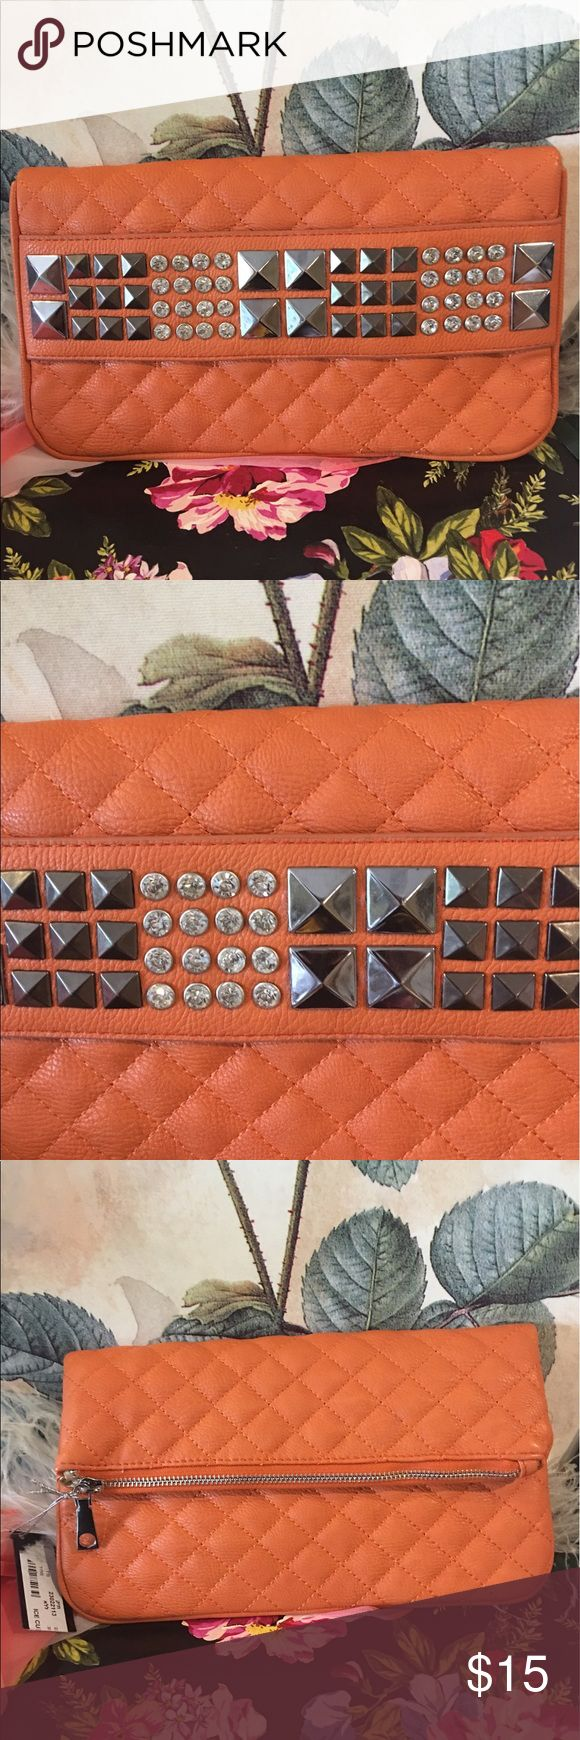 "Ice Cube Faux Orange Leather clutch Handbag NWT Ice Cube brand Faux leather orange clutch bag. Embellished with rhinestones and studs. It has snap closure but also opens up fully and has zipper closure as shown in photos. Measures 11"" across x 10"" tall unfolded and 10"" x 6 1/2"" folded and snapped. NWT. Ice Cube Bags Clutches & Wristlets"